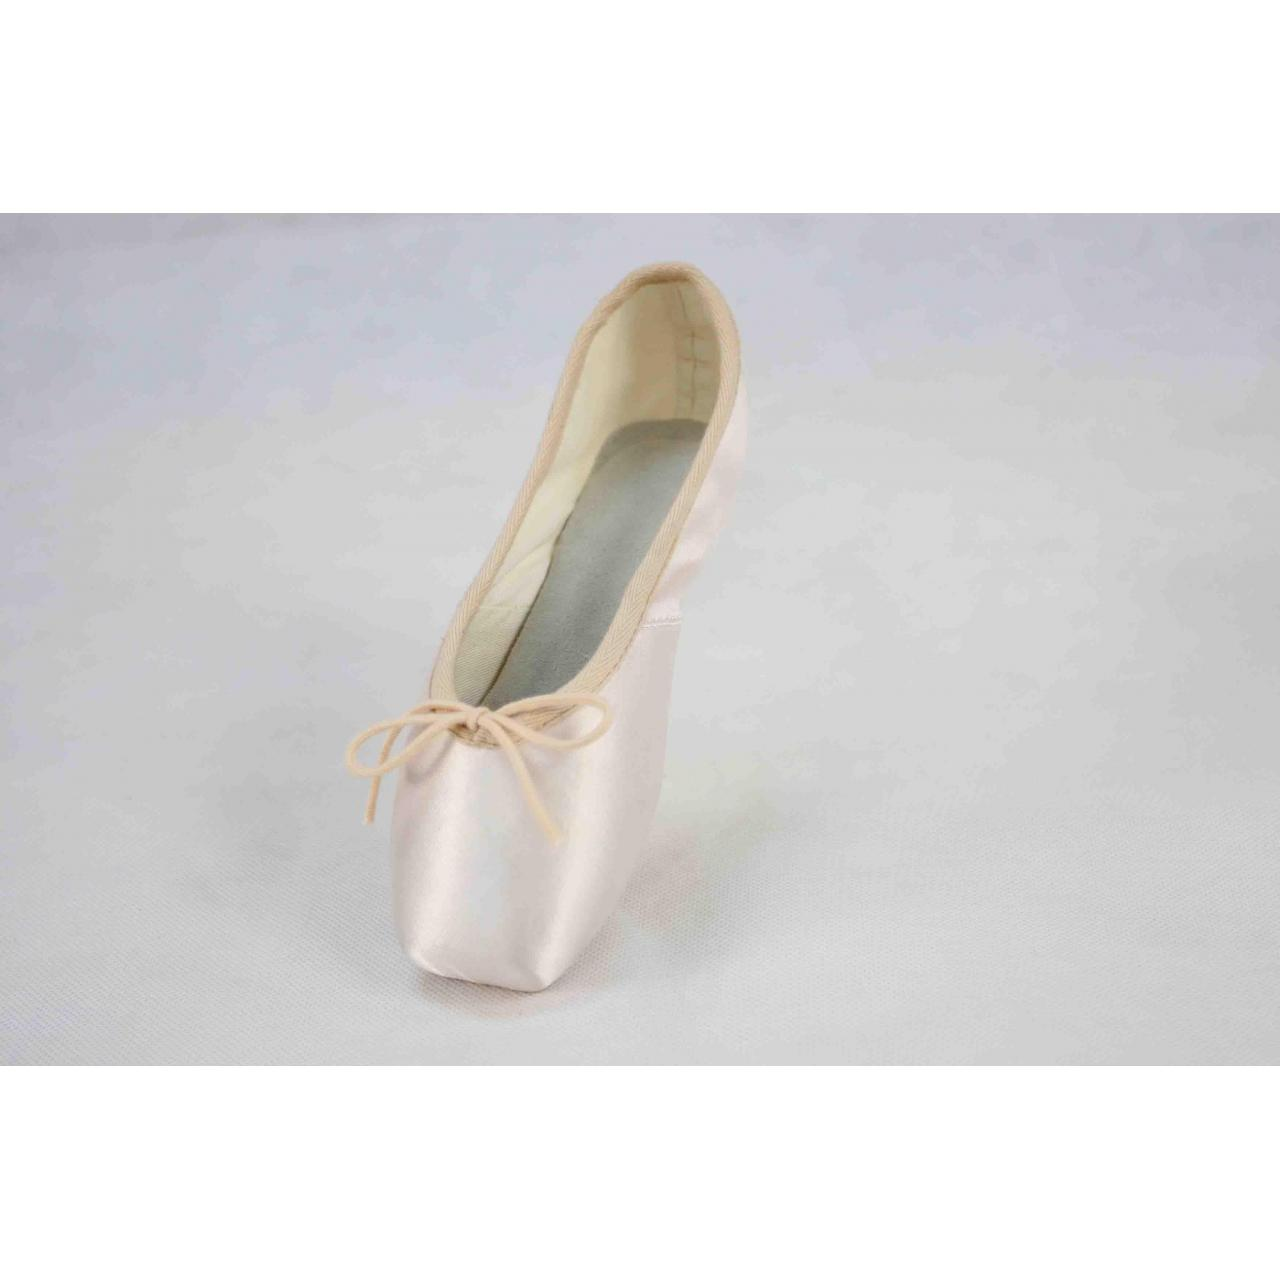 Light Industrial Products pointeballetshoe 2231524216 Manufactures